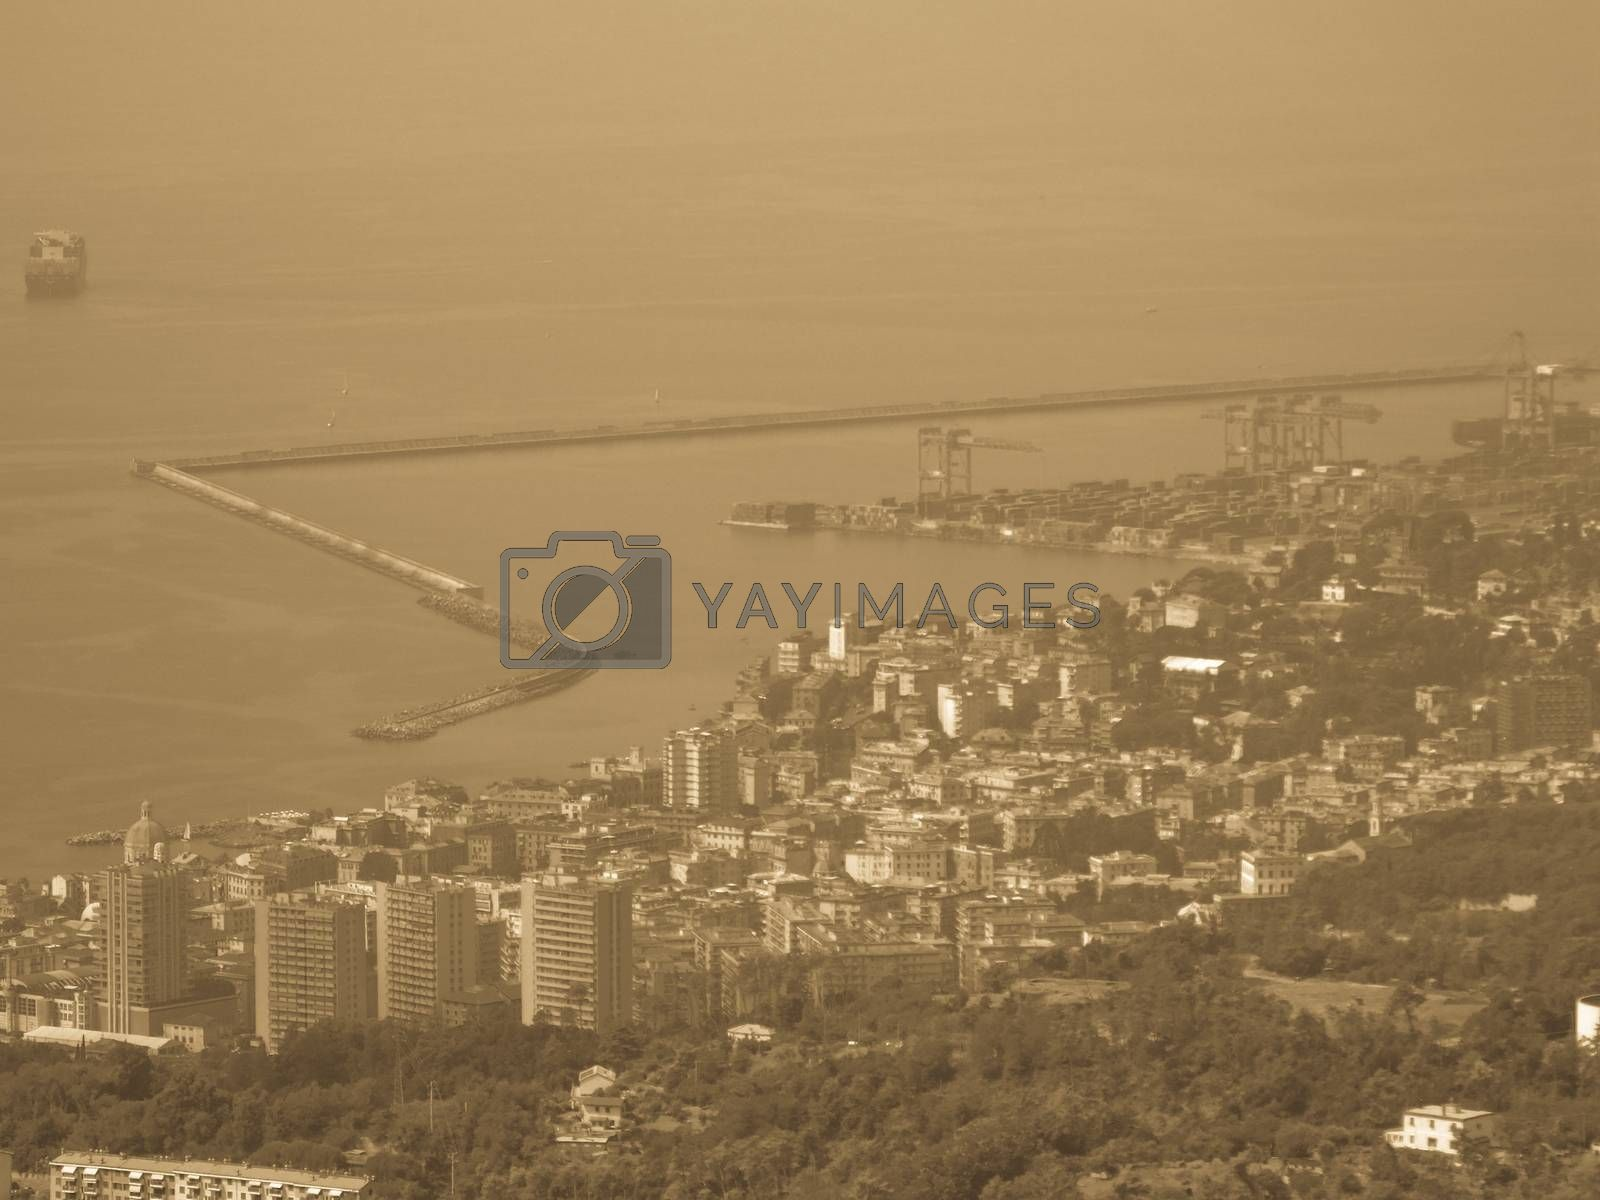 Genova, Italy – 07/30/2020: Beautiful scenic aerial view of the city, port, dam, sea, Cristoforo Colombo airport runway, containers shipping terminal, Pra, Voltri, and Sestri promontory